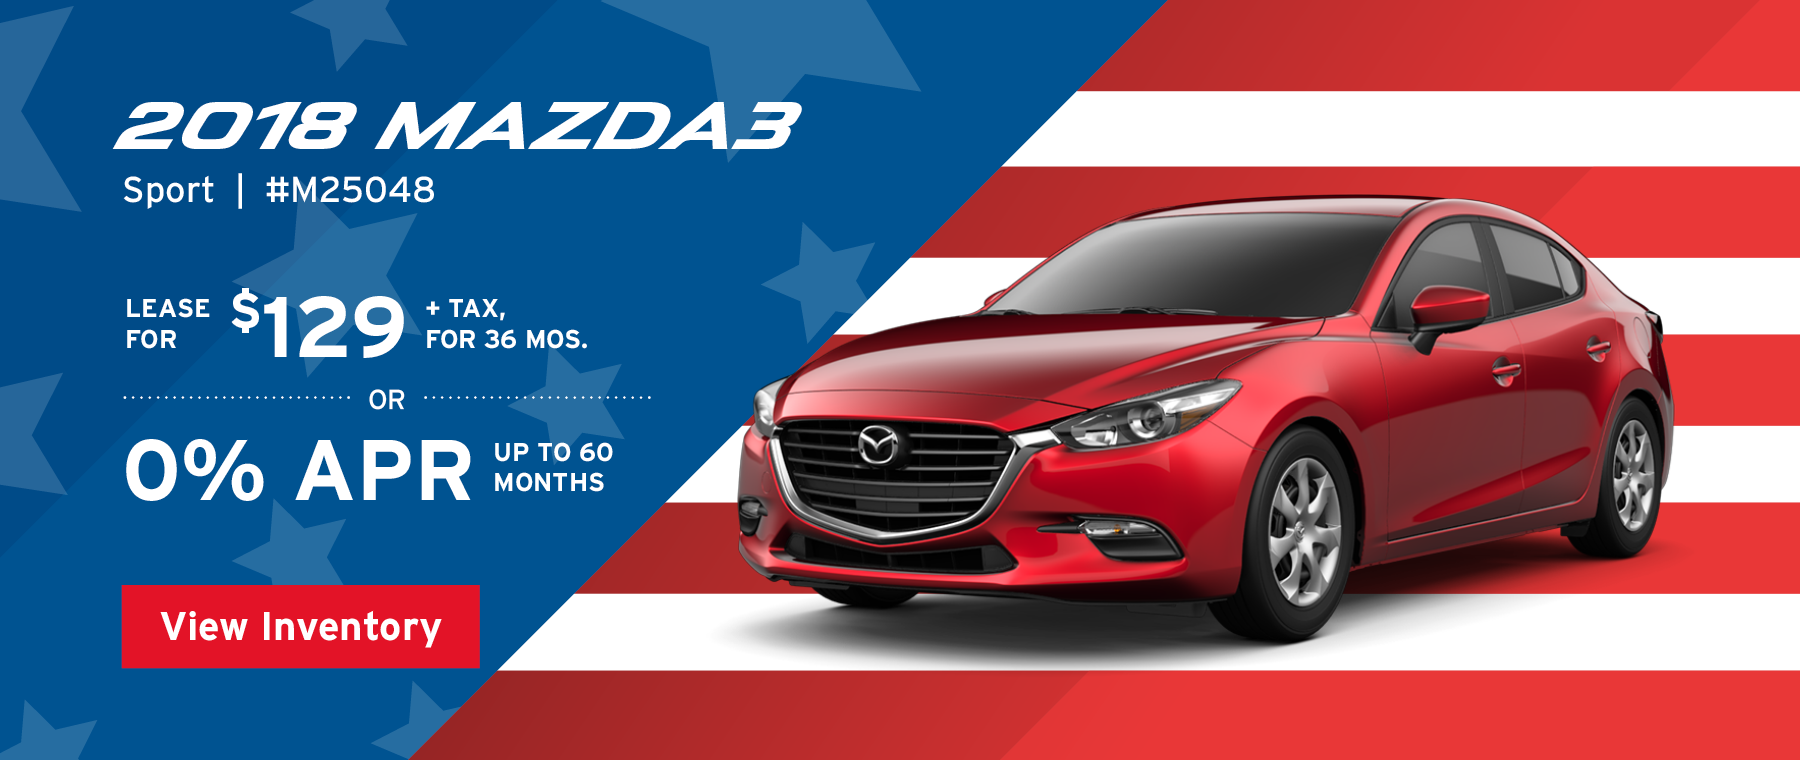 Lease the 2018 Mazda3 Sport for $129, plus tax for 36 months, or 0% APR up to 60 months.